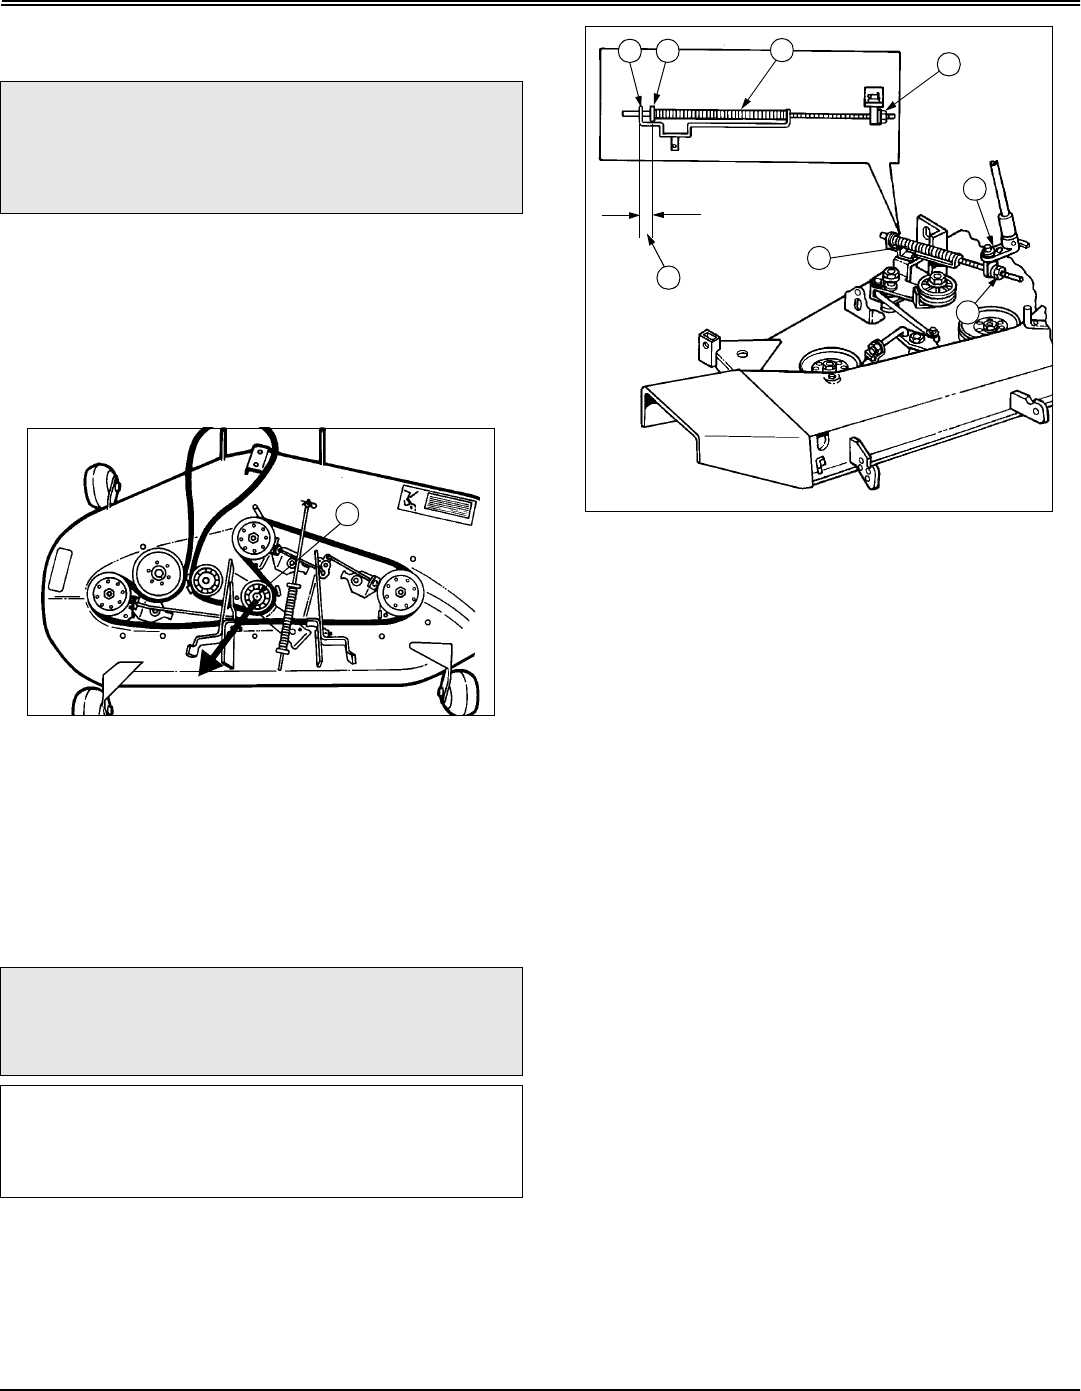 b5e9d01c 9017 4e04 82a5 0d387216d6f2 bg23 page 35 of scotts lawn mower s2546 user guide manualsonline com scotts s1642 wiring diagram at cos-gaming.co